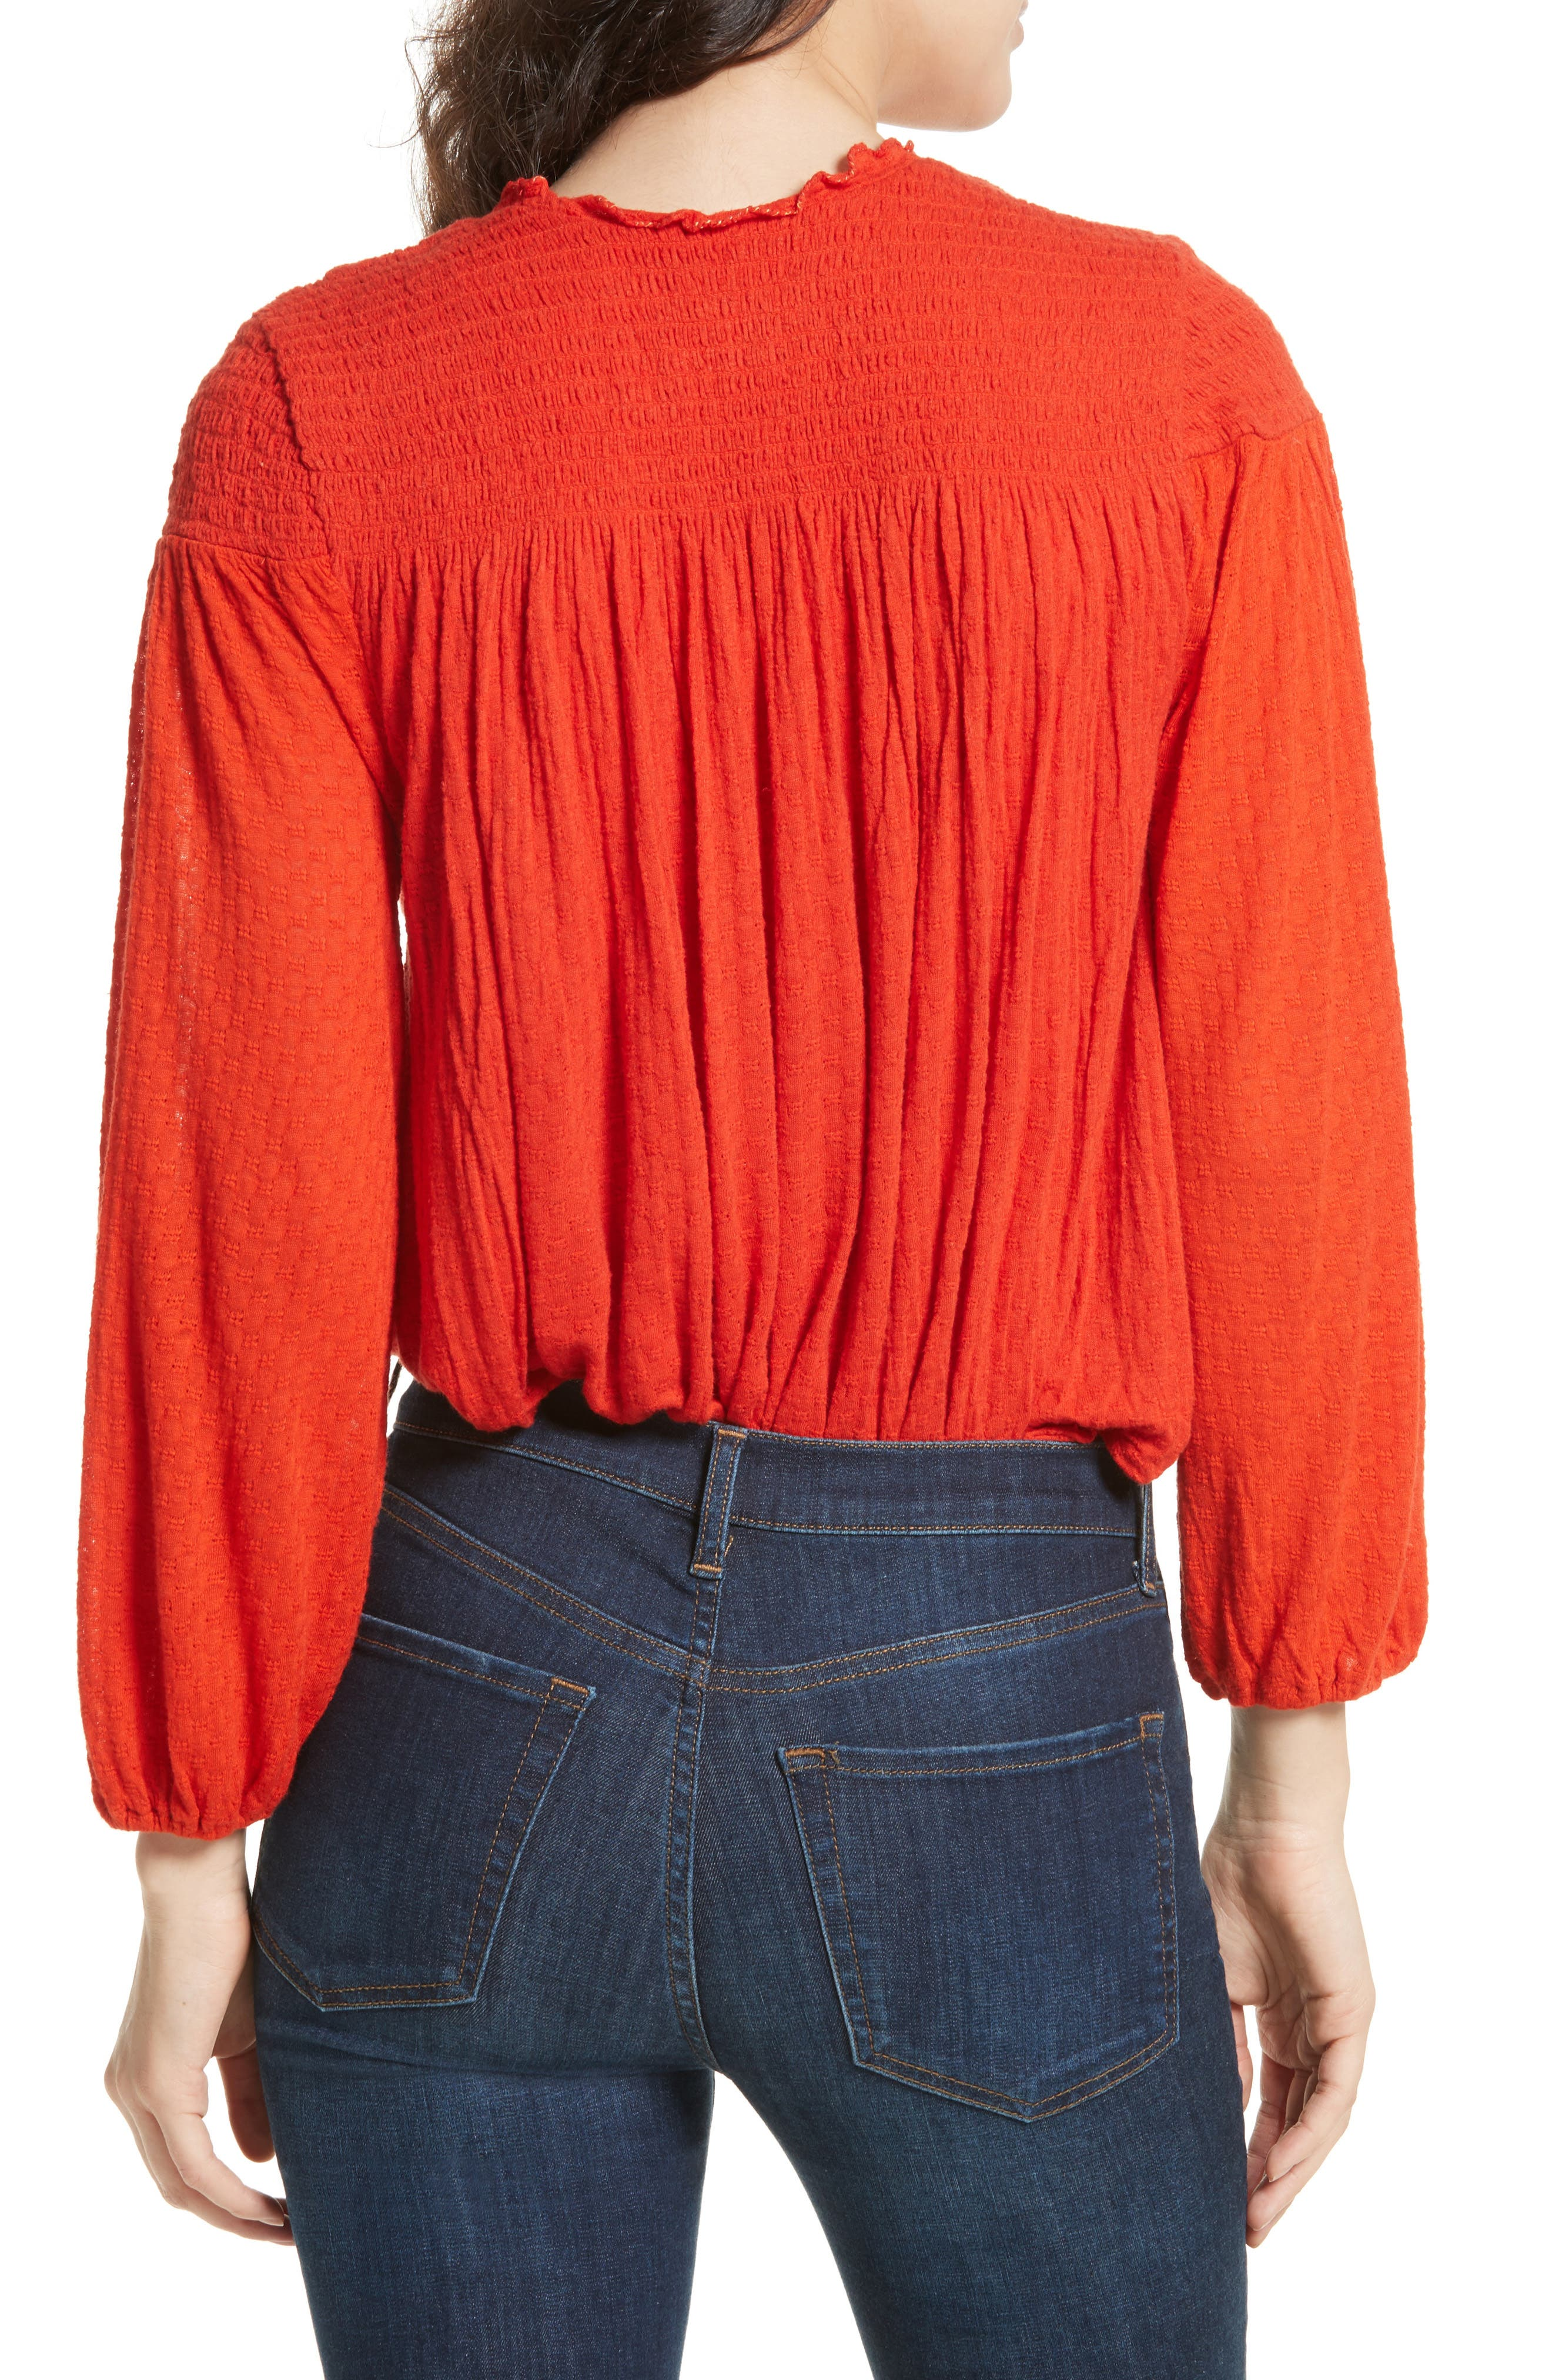 Begonia Top,                             Alternate thumbnail 2, color,                             Red